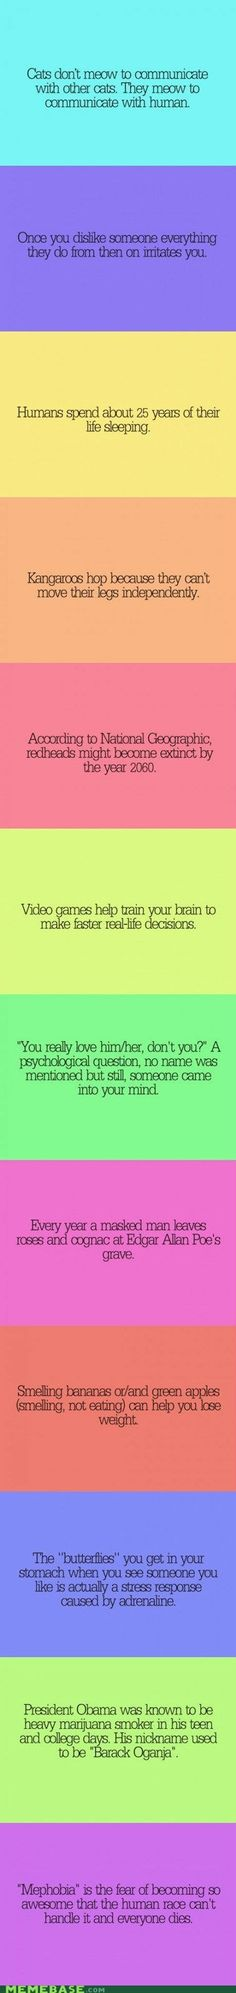 Psycho Facts  By the way- I'm the last fact